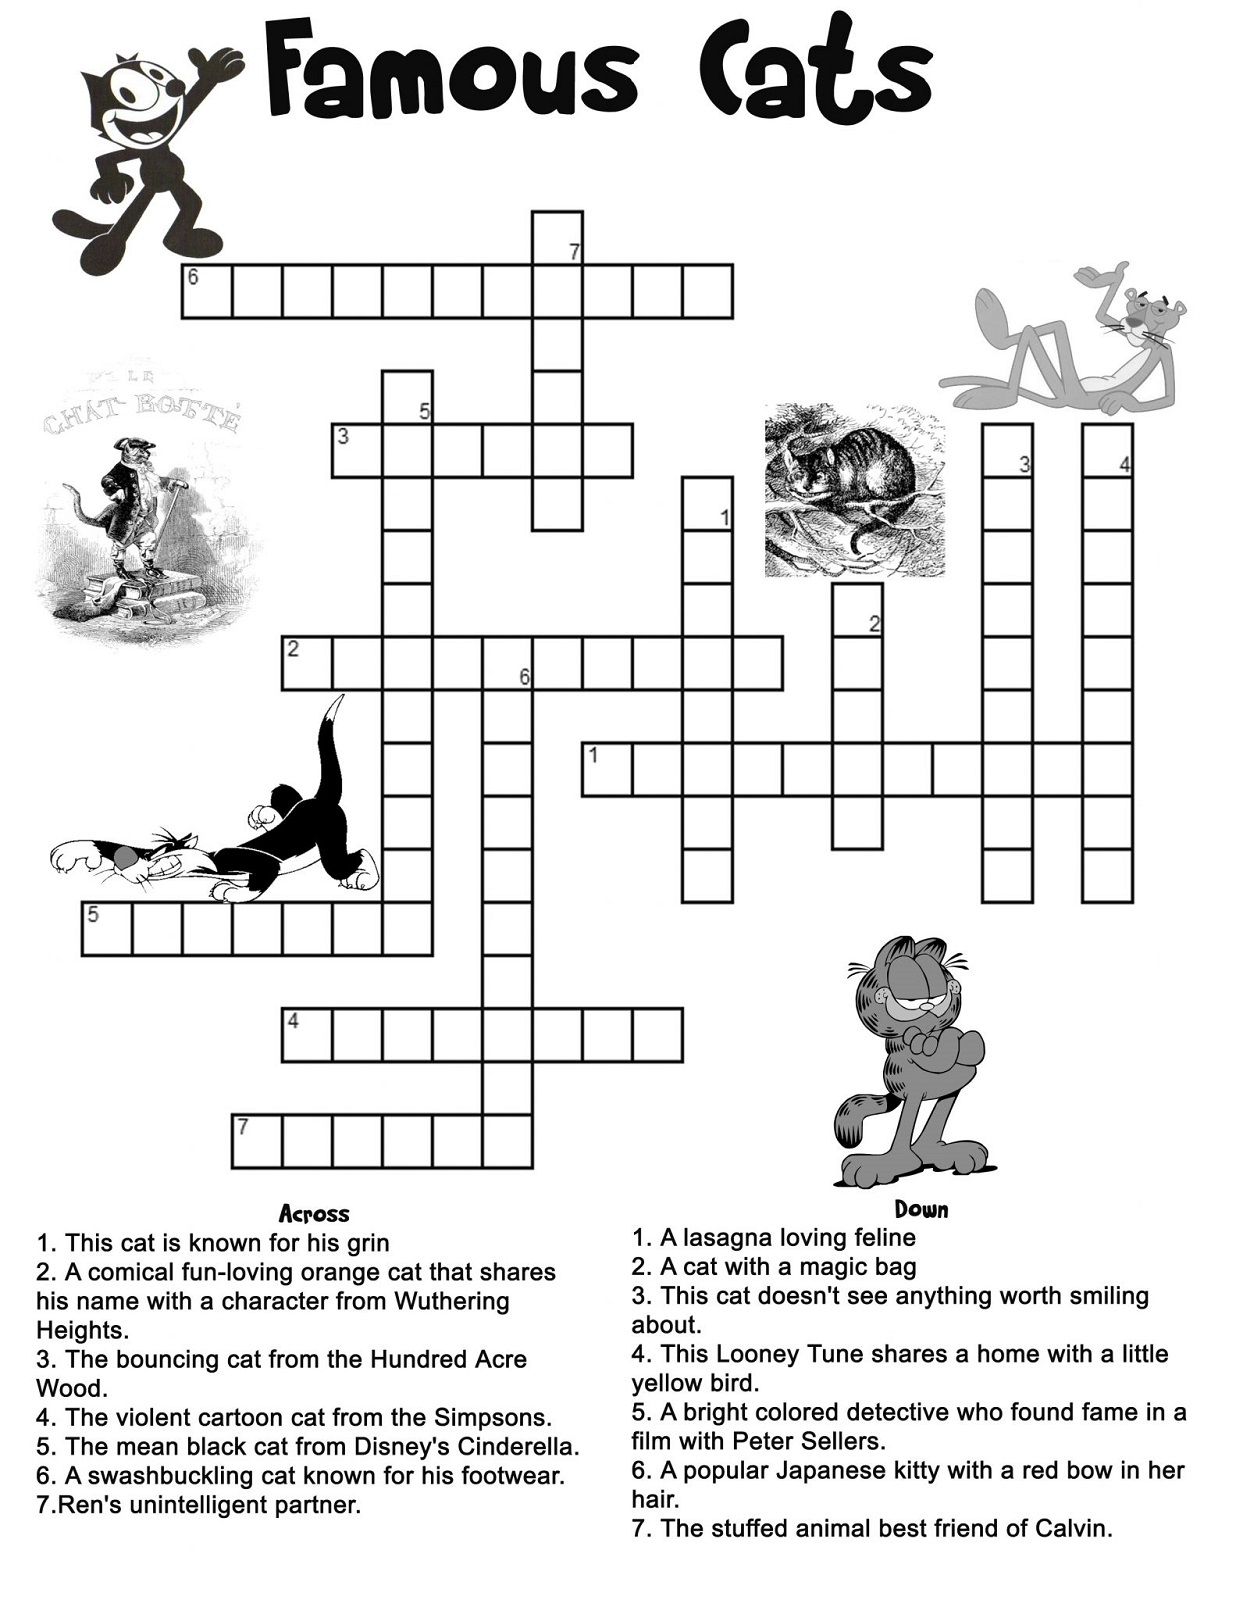 Kids' Crossword Puzzles To Print | Activity Shelter - Printable Cartoon Crossword Puzzles